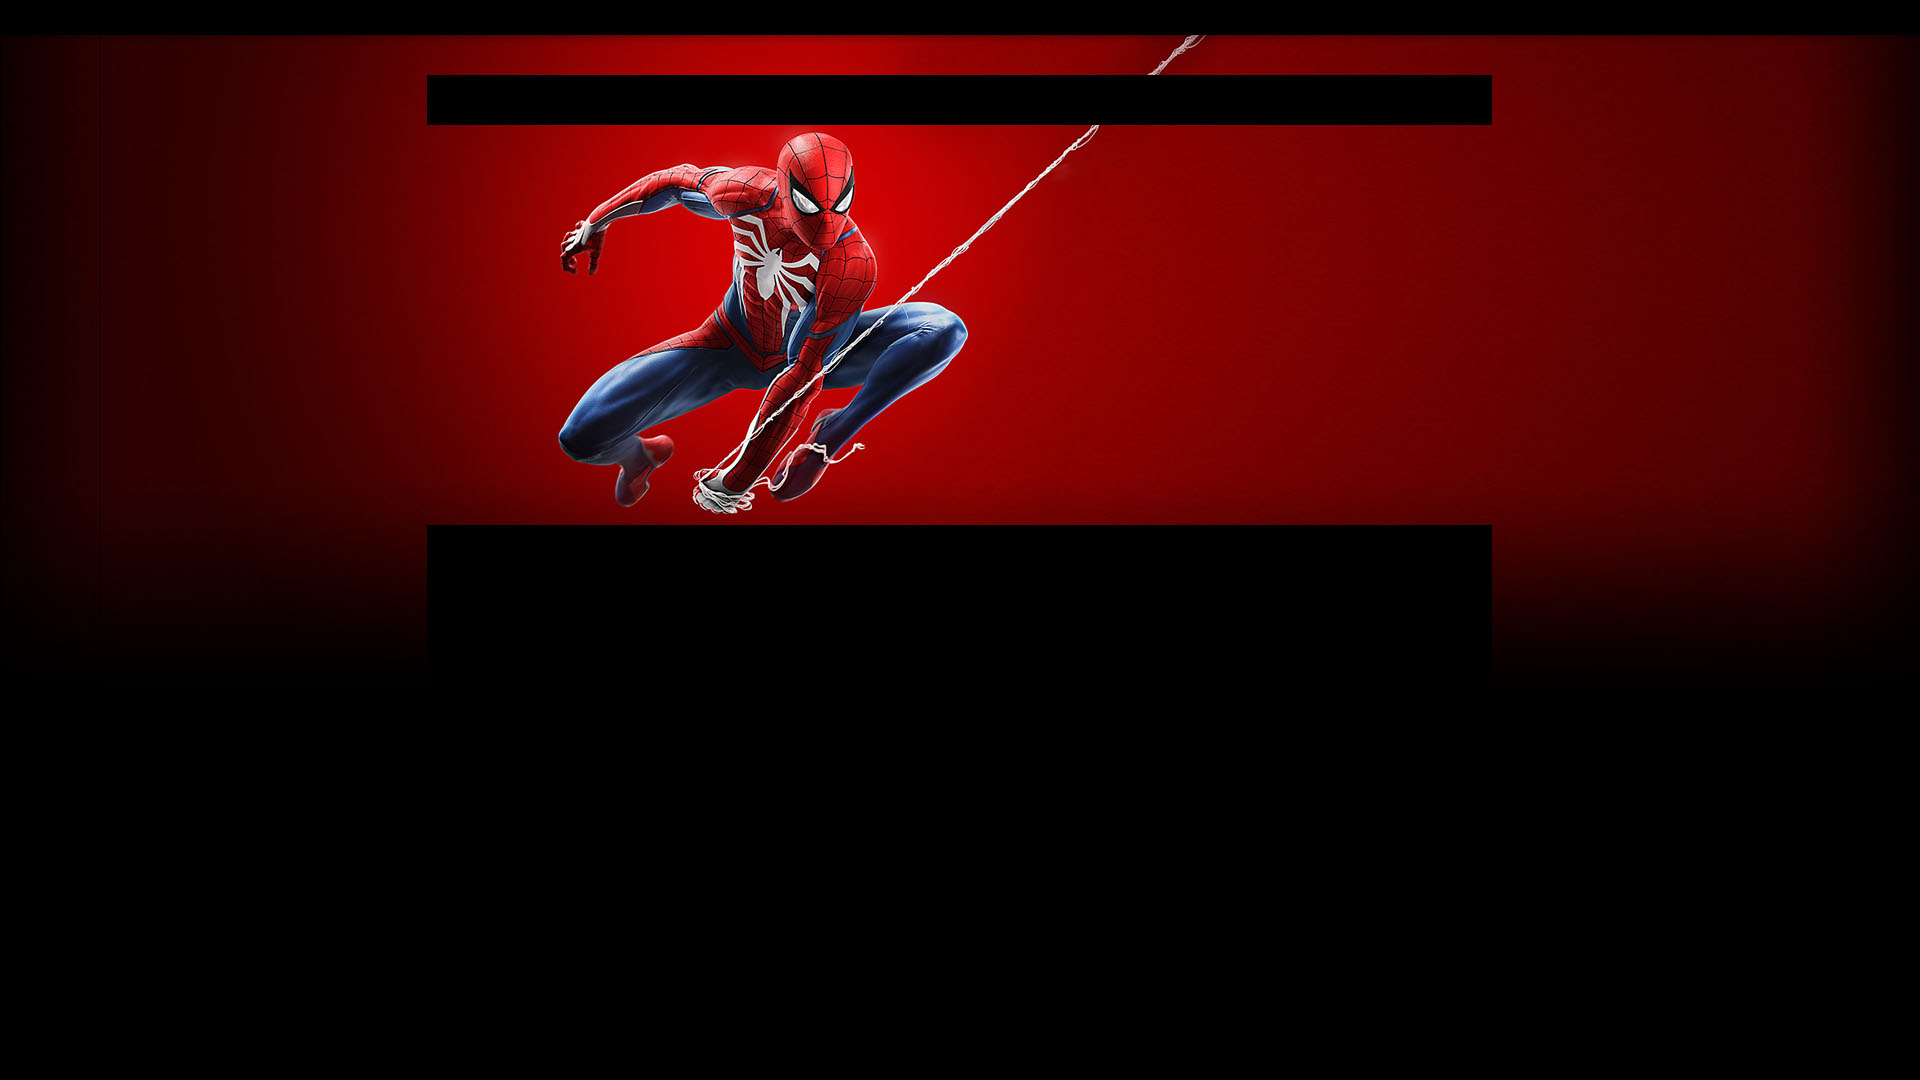 Spider-Man [PS4] video game